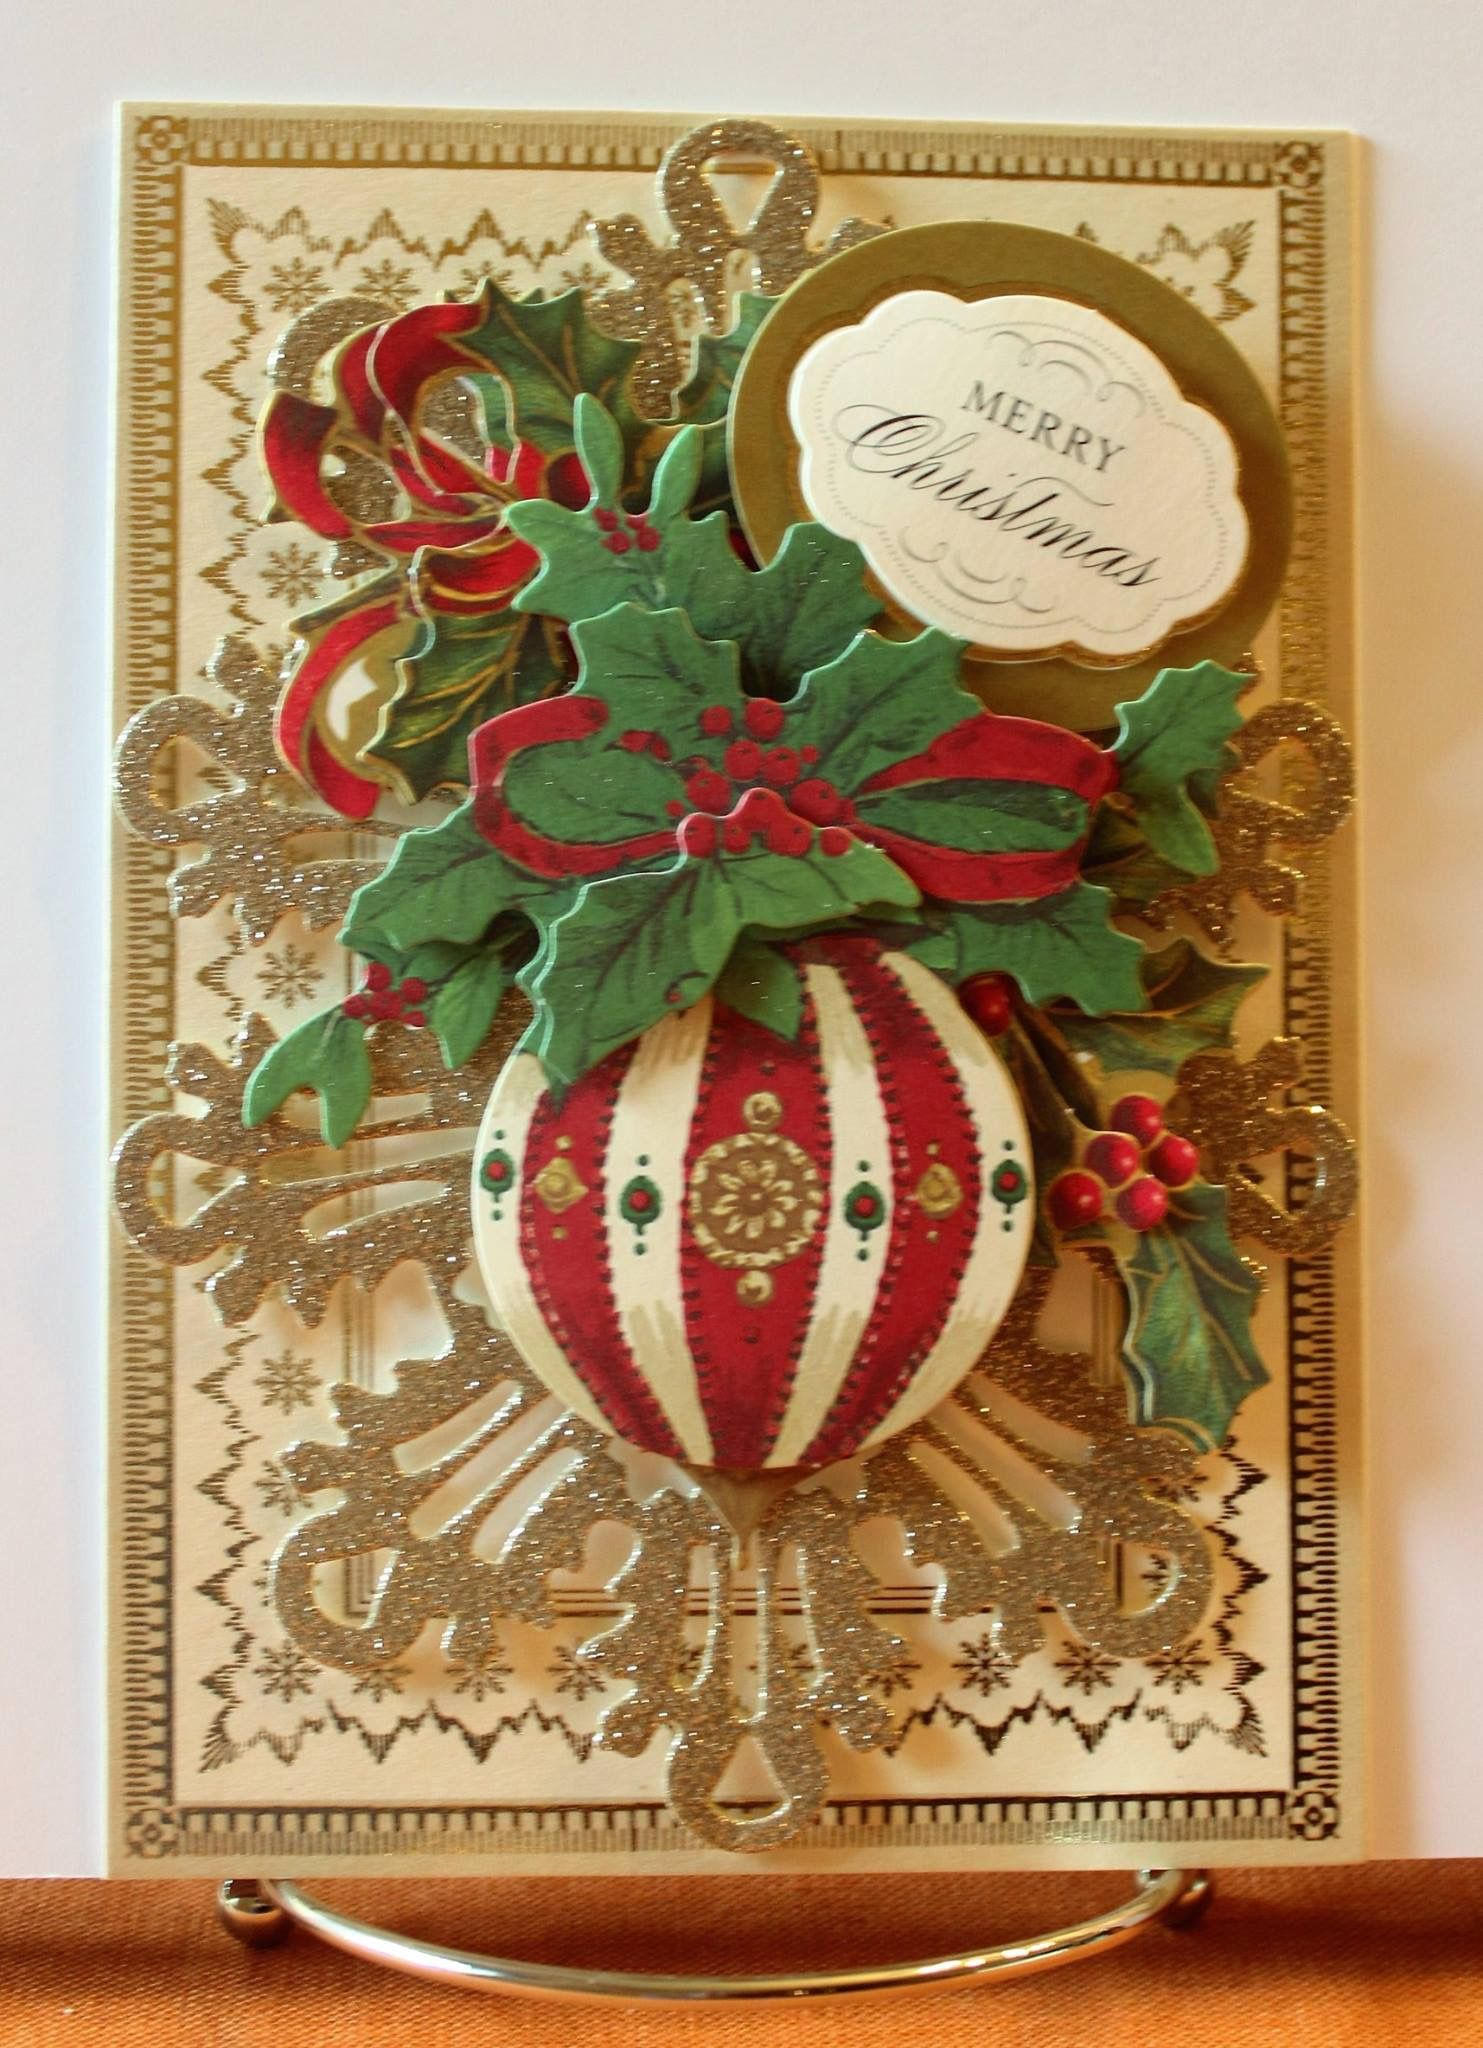 Pin by Mary Armstrong on Anna Griffin Christmas Cards | Pinterest ...